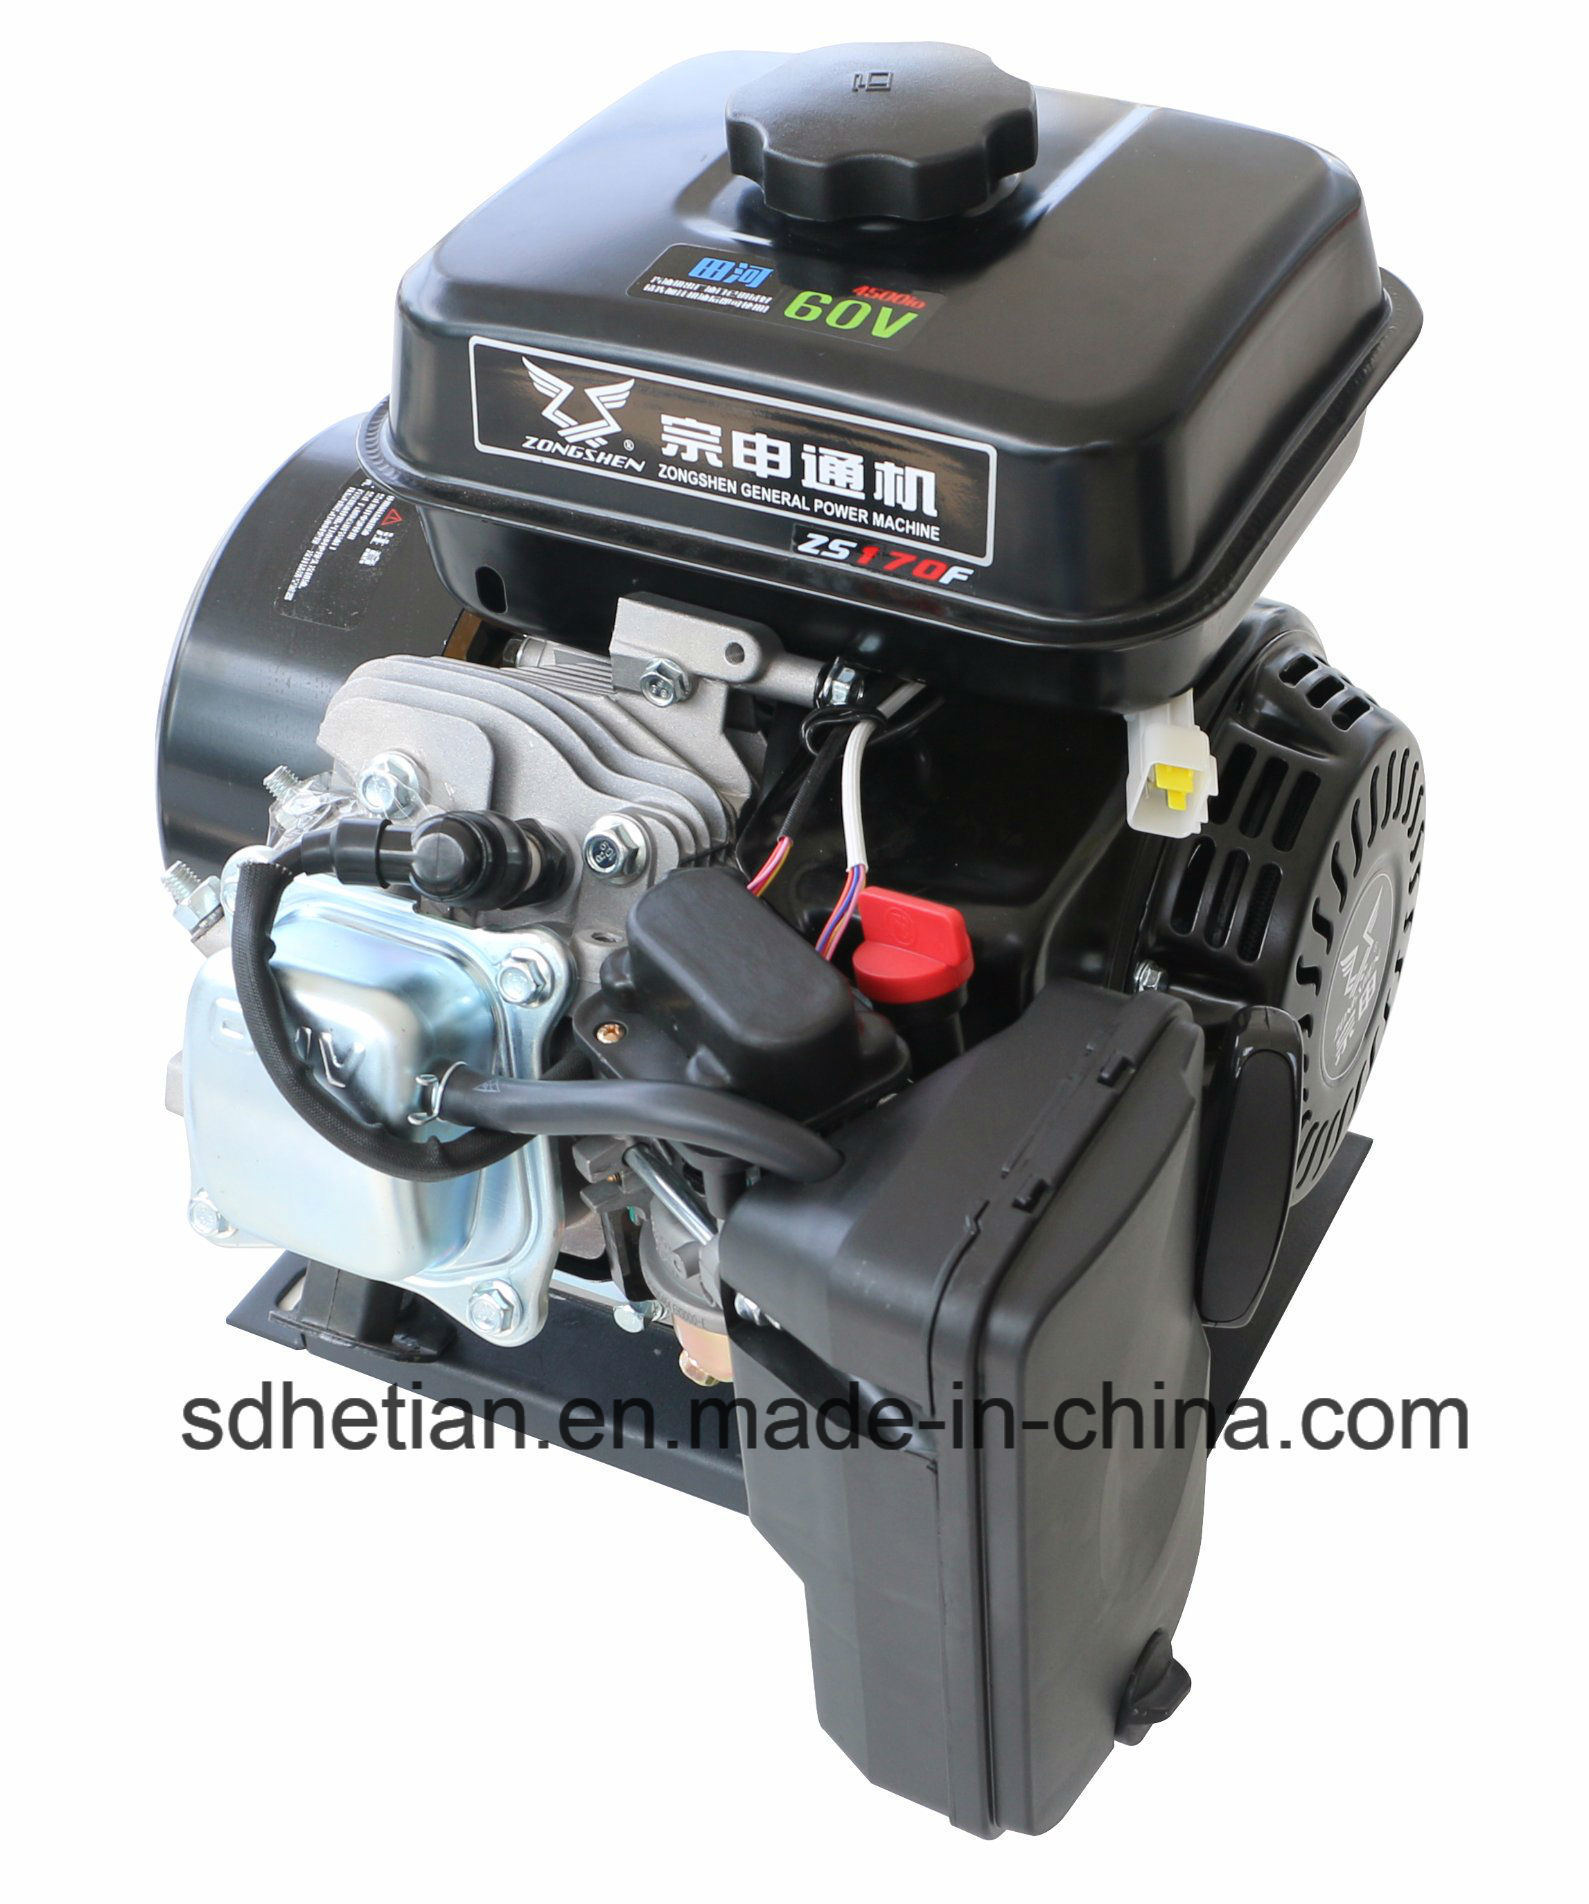 China 170f Electric Vehicle Range Extender Generator Car Gasoline